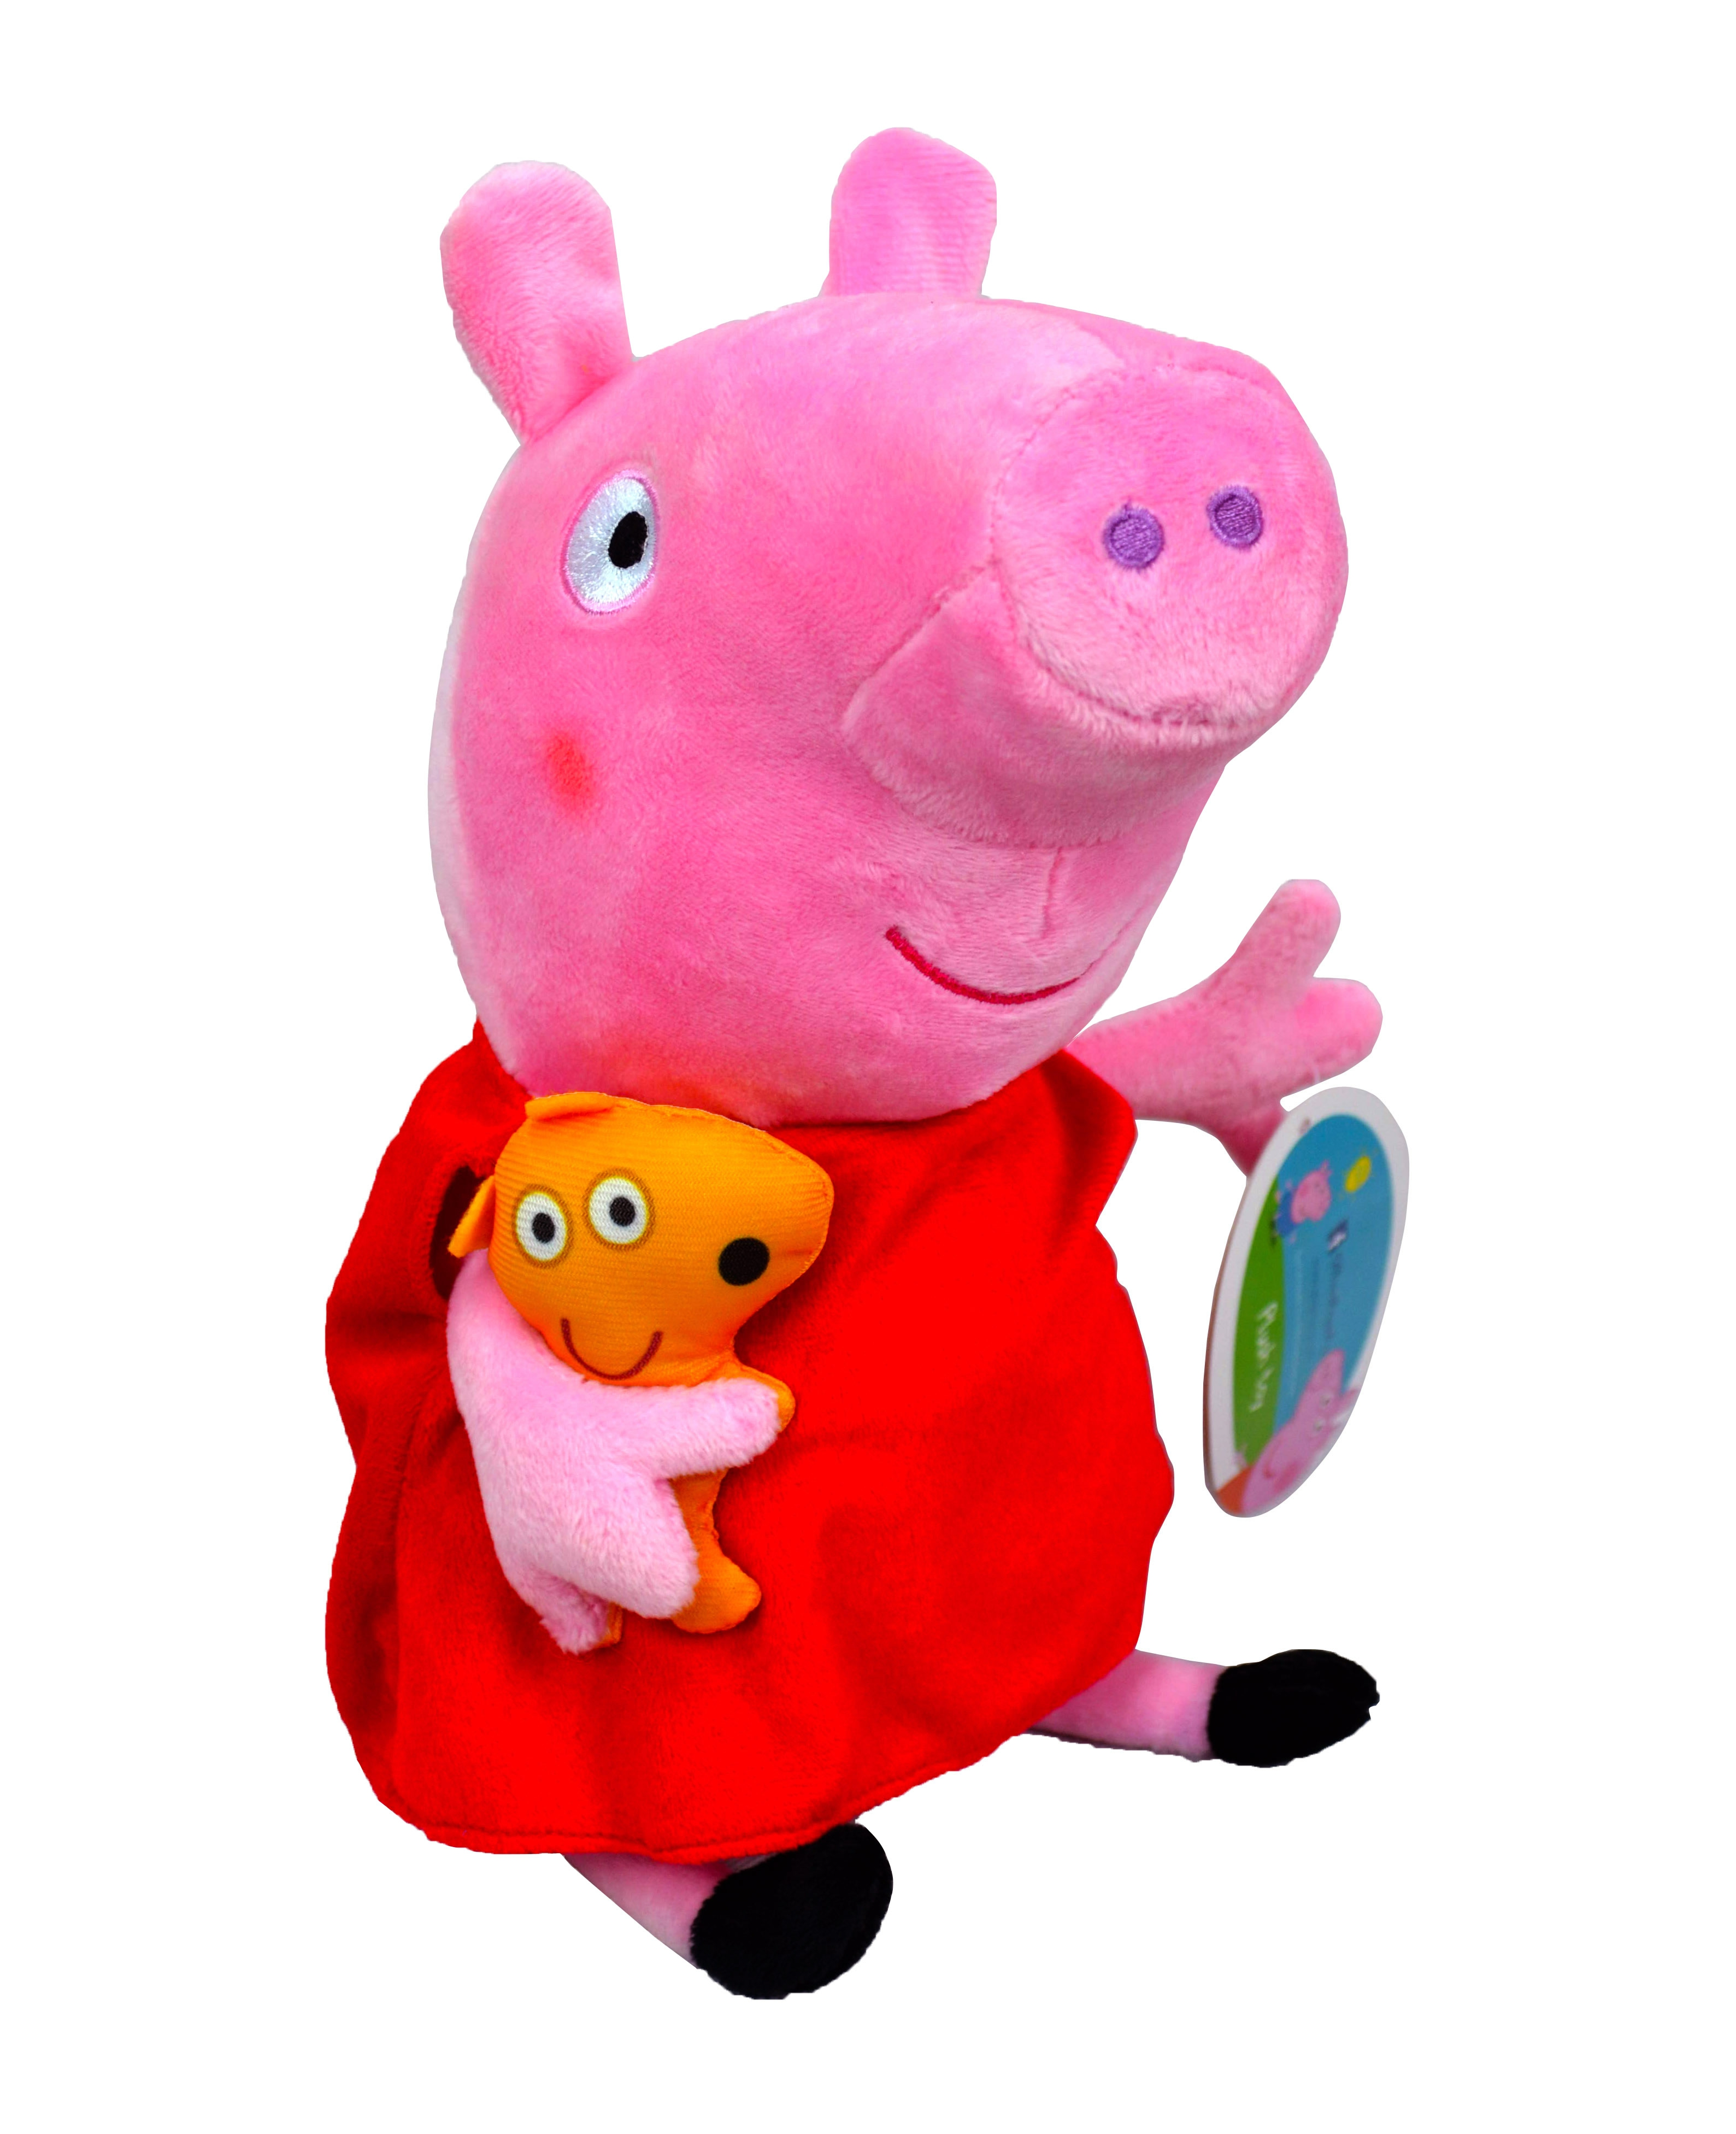 Best Peppa Pig Toys : Peppa pig toy cm plush soft